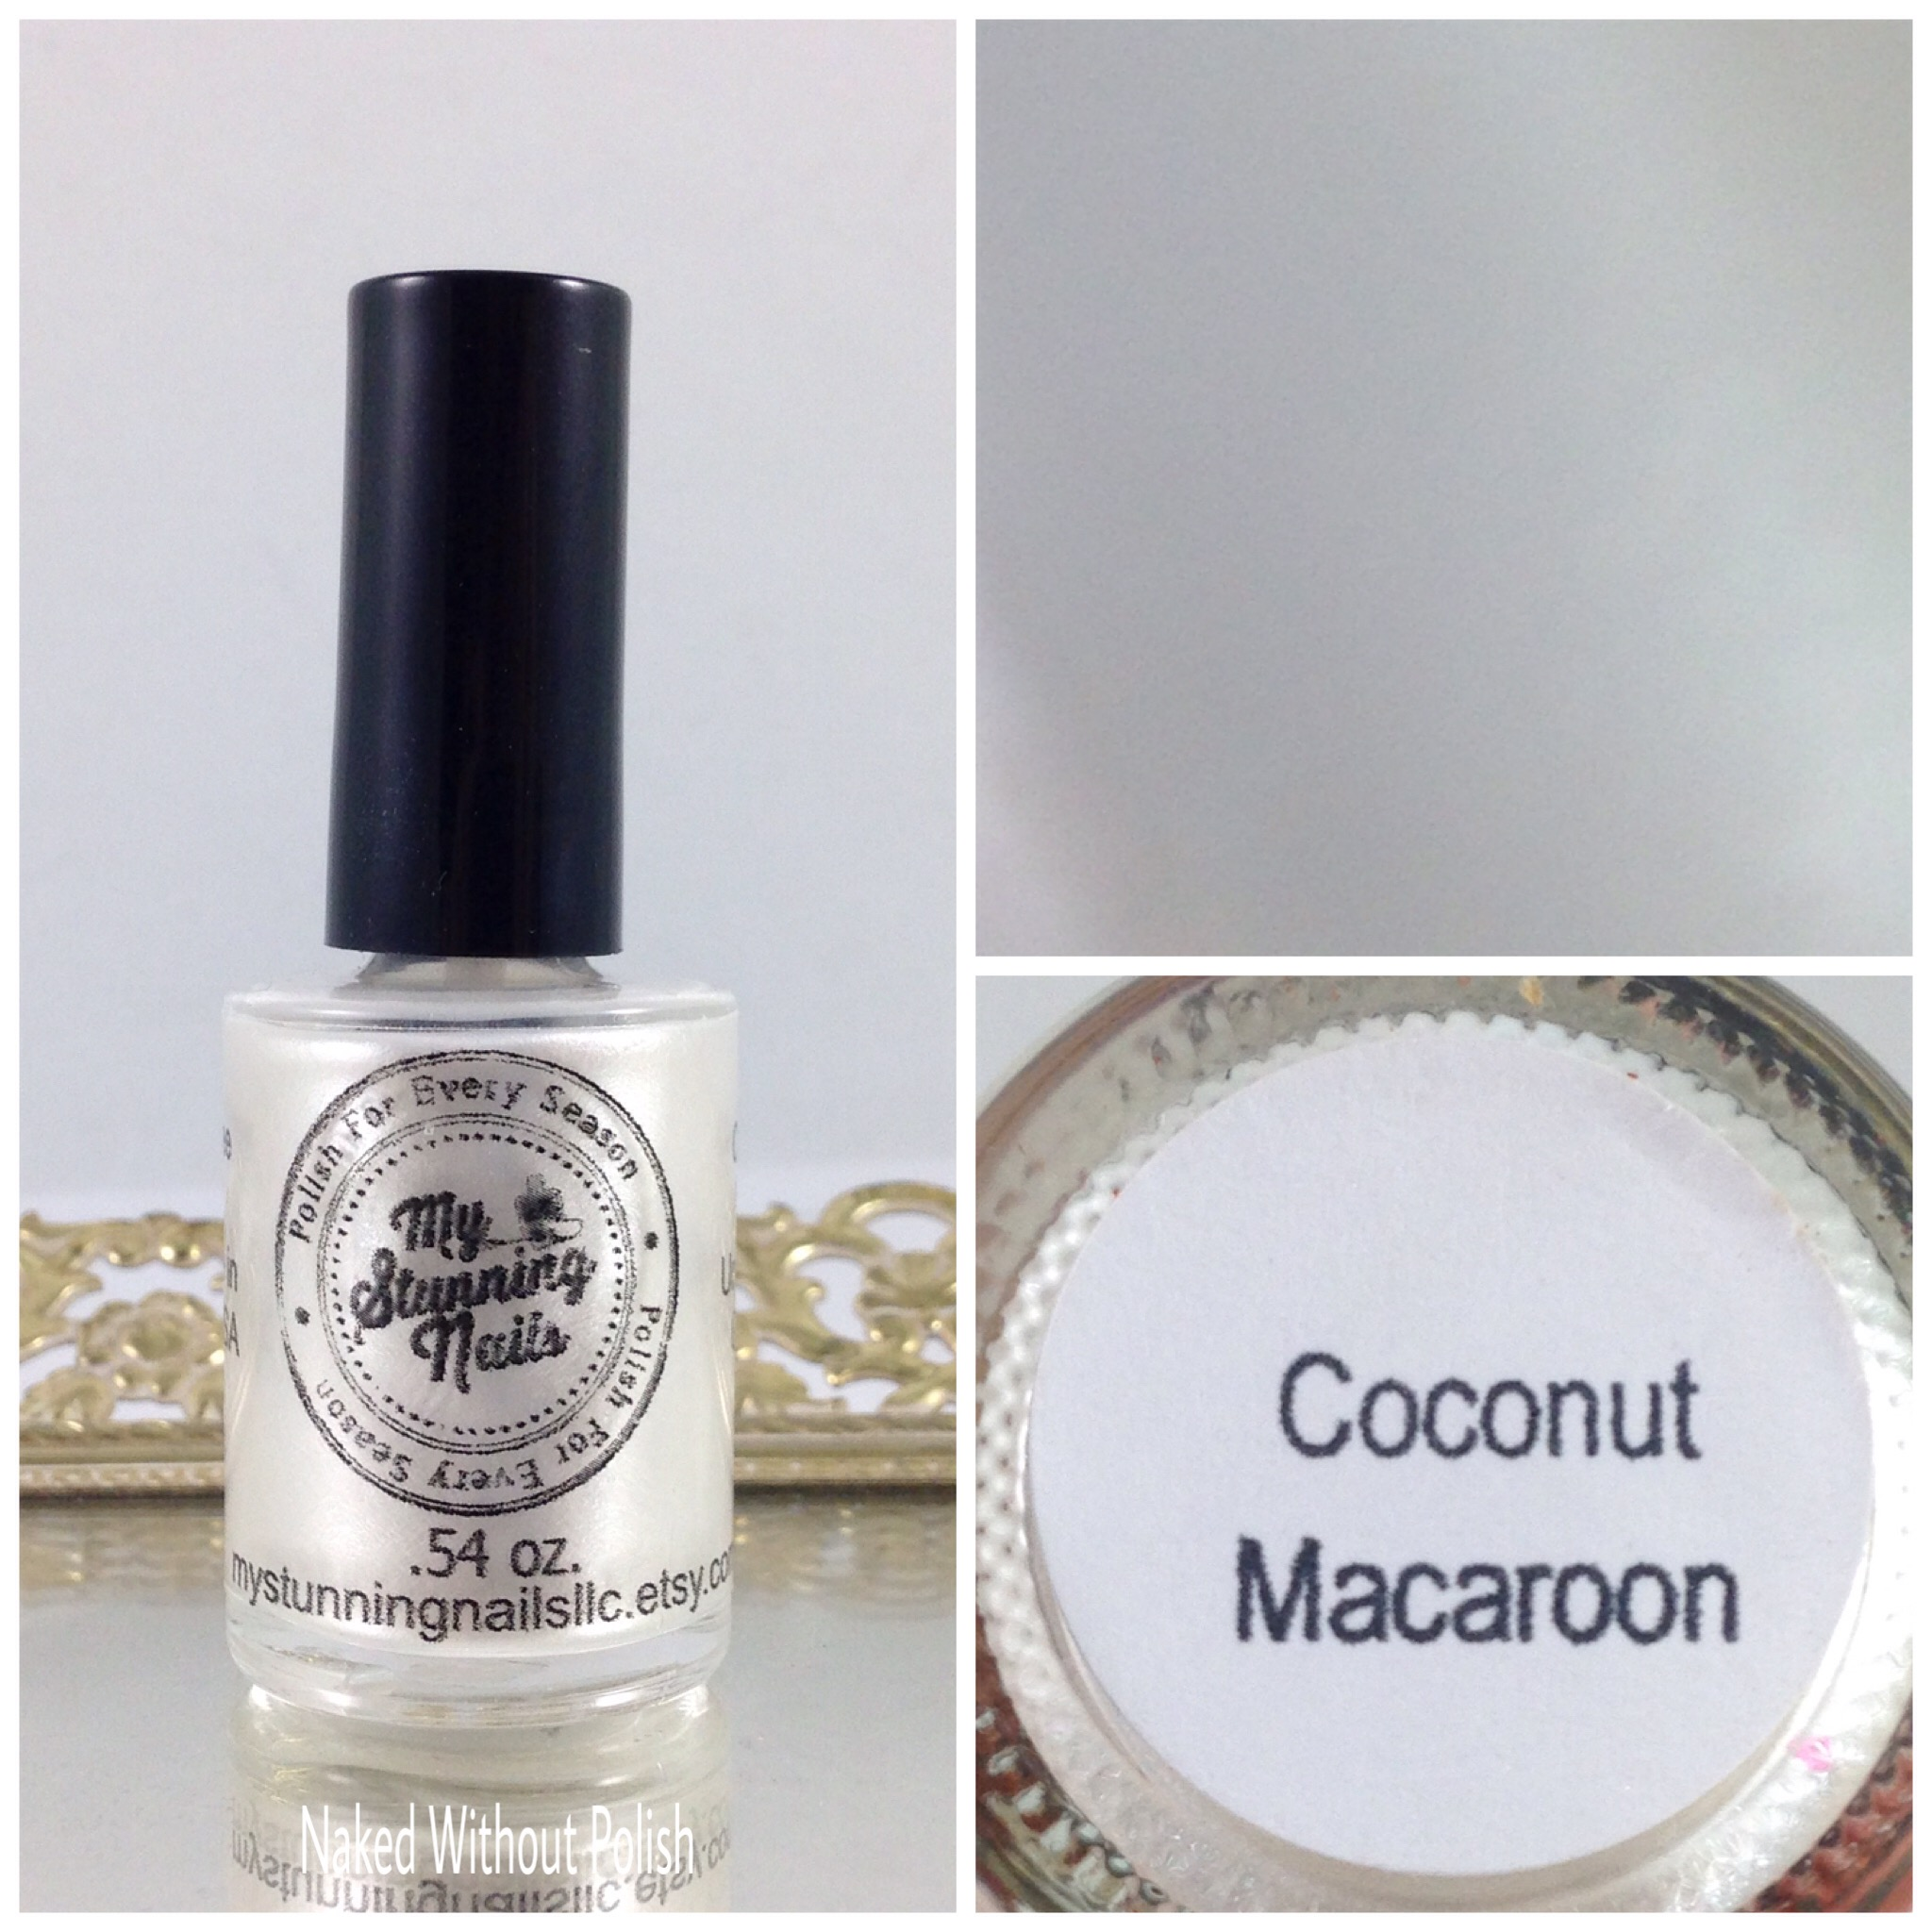 My-Stunning-Nails-Coconut-Macaroon-1